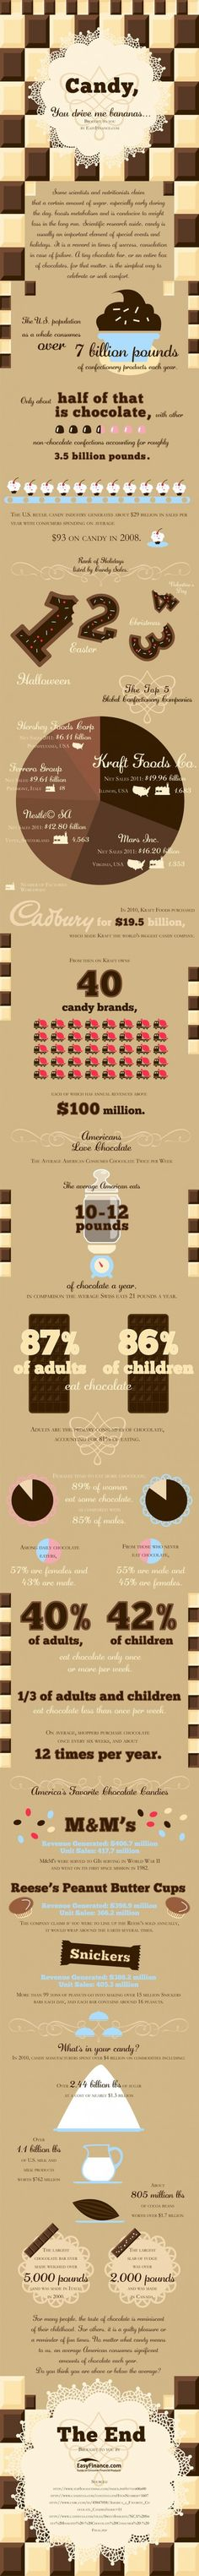 #INFOGRAPHIC: CANDY, YOU DRIVE ME BANANAS